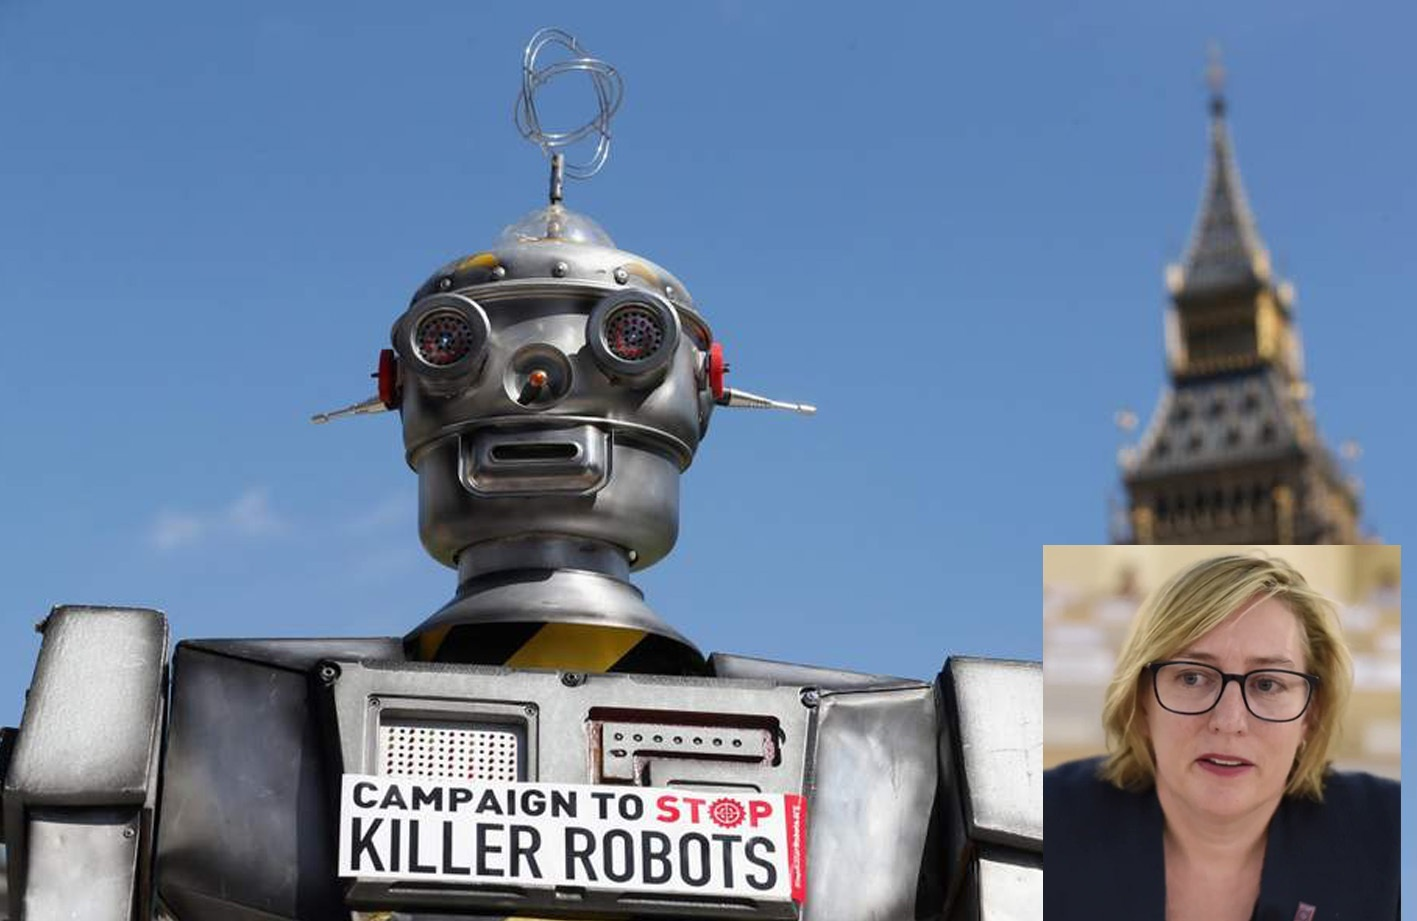 Killer Robots, Campaign, Mary Wareham, artificial intelligence, Robotics, discussions, ww3, Geneva, Russia